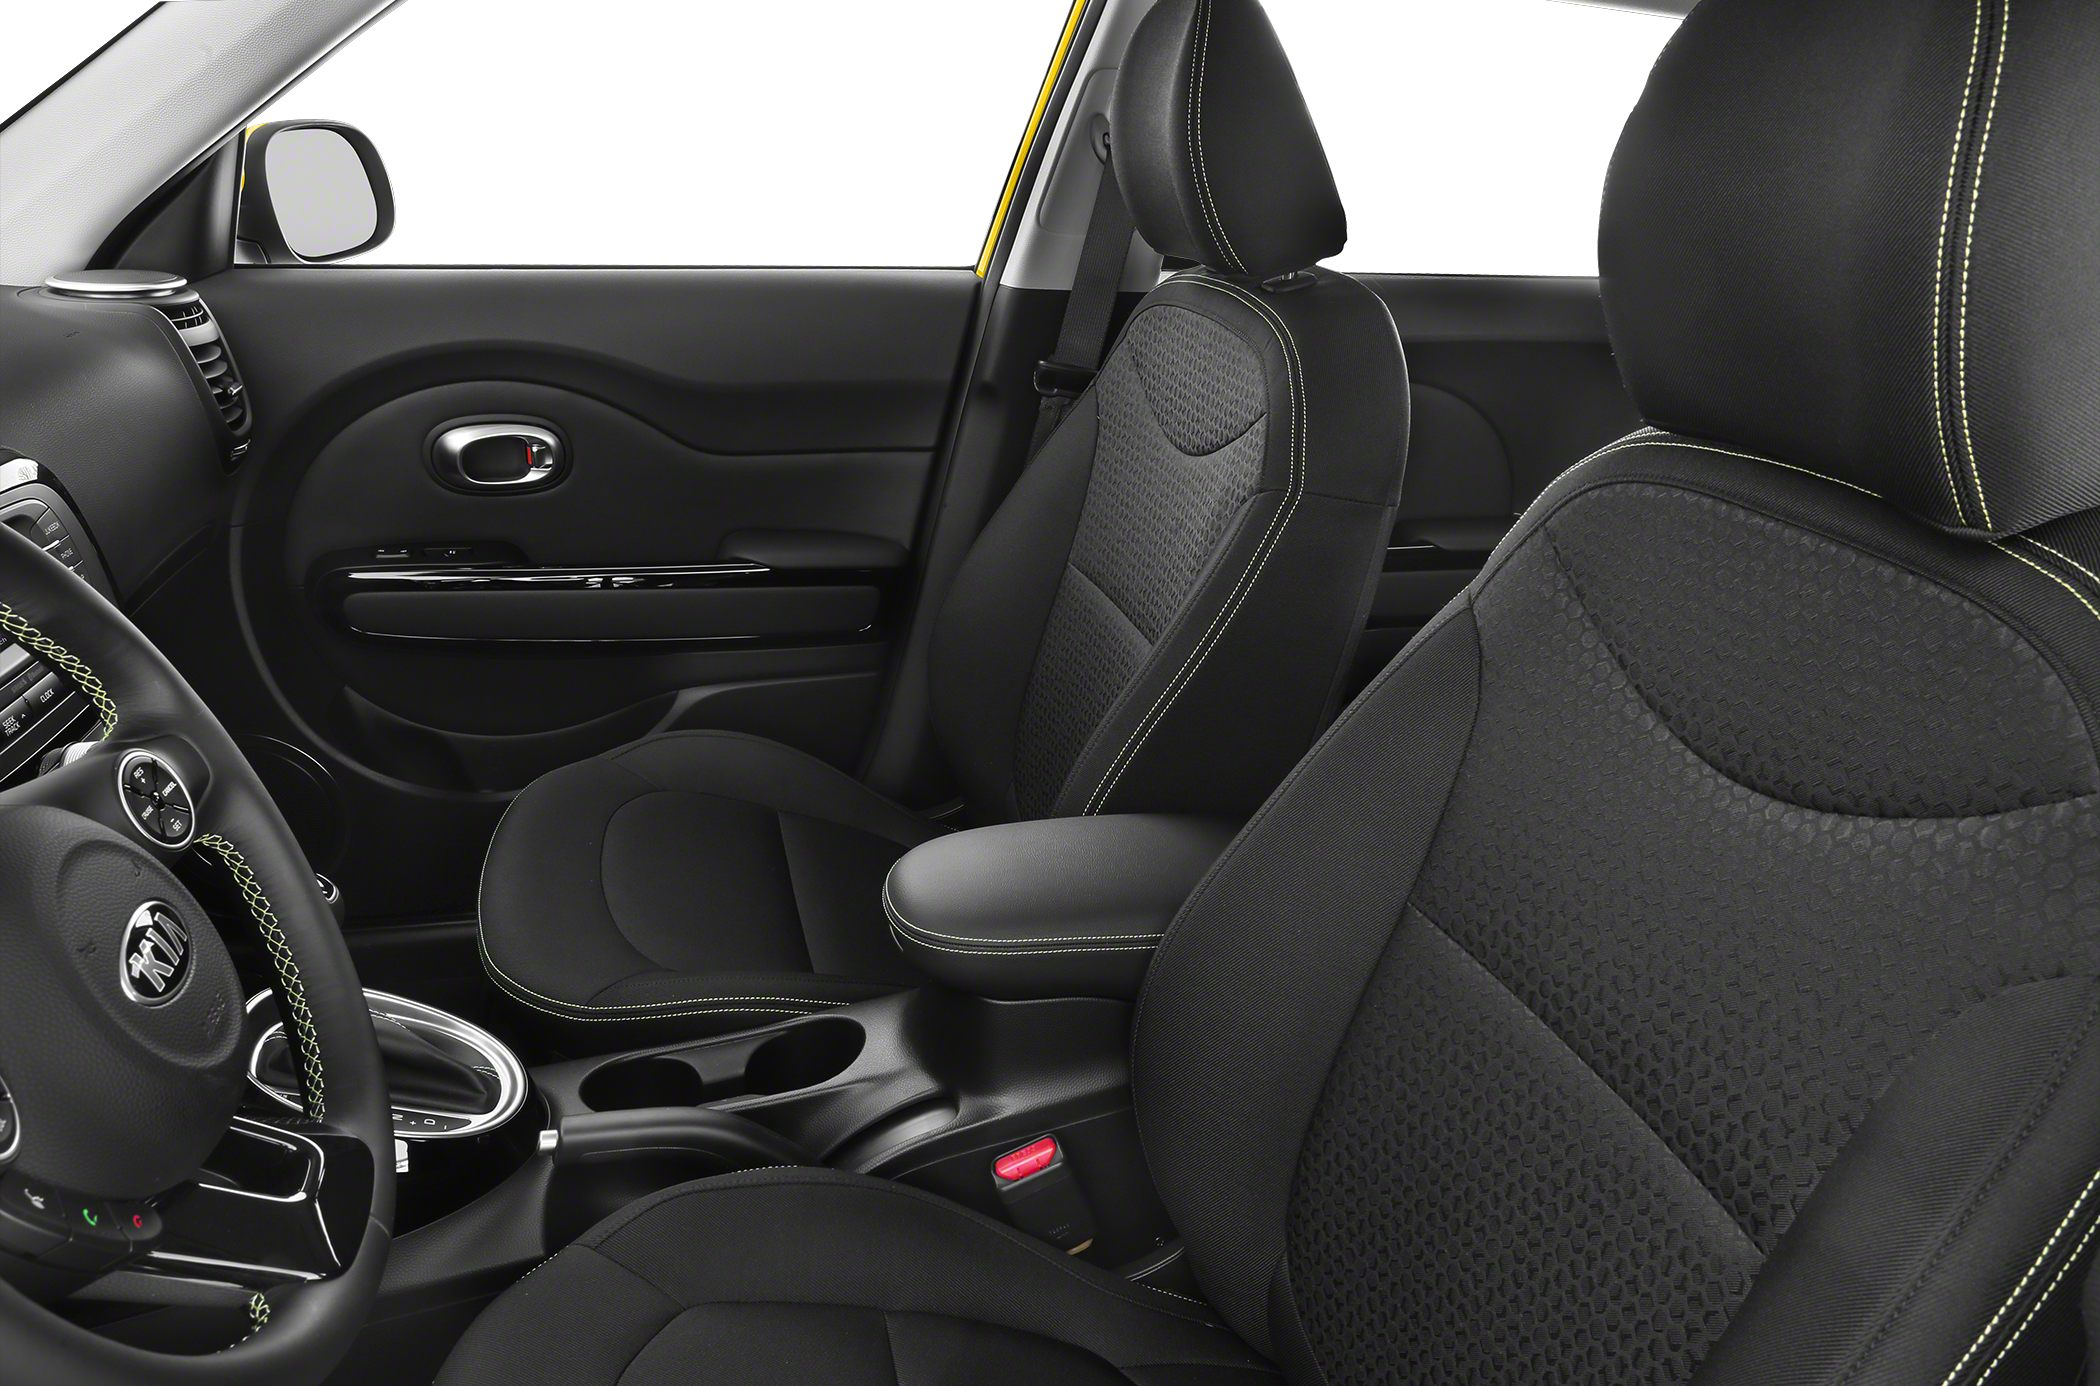 2016 Kia Soul Styles  Features Highlights